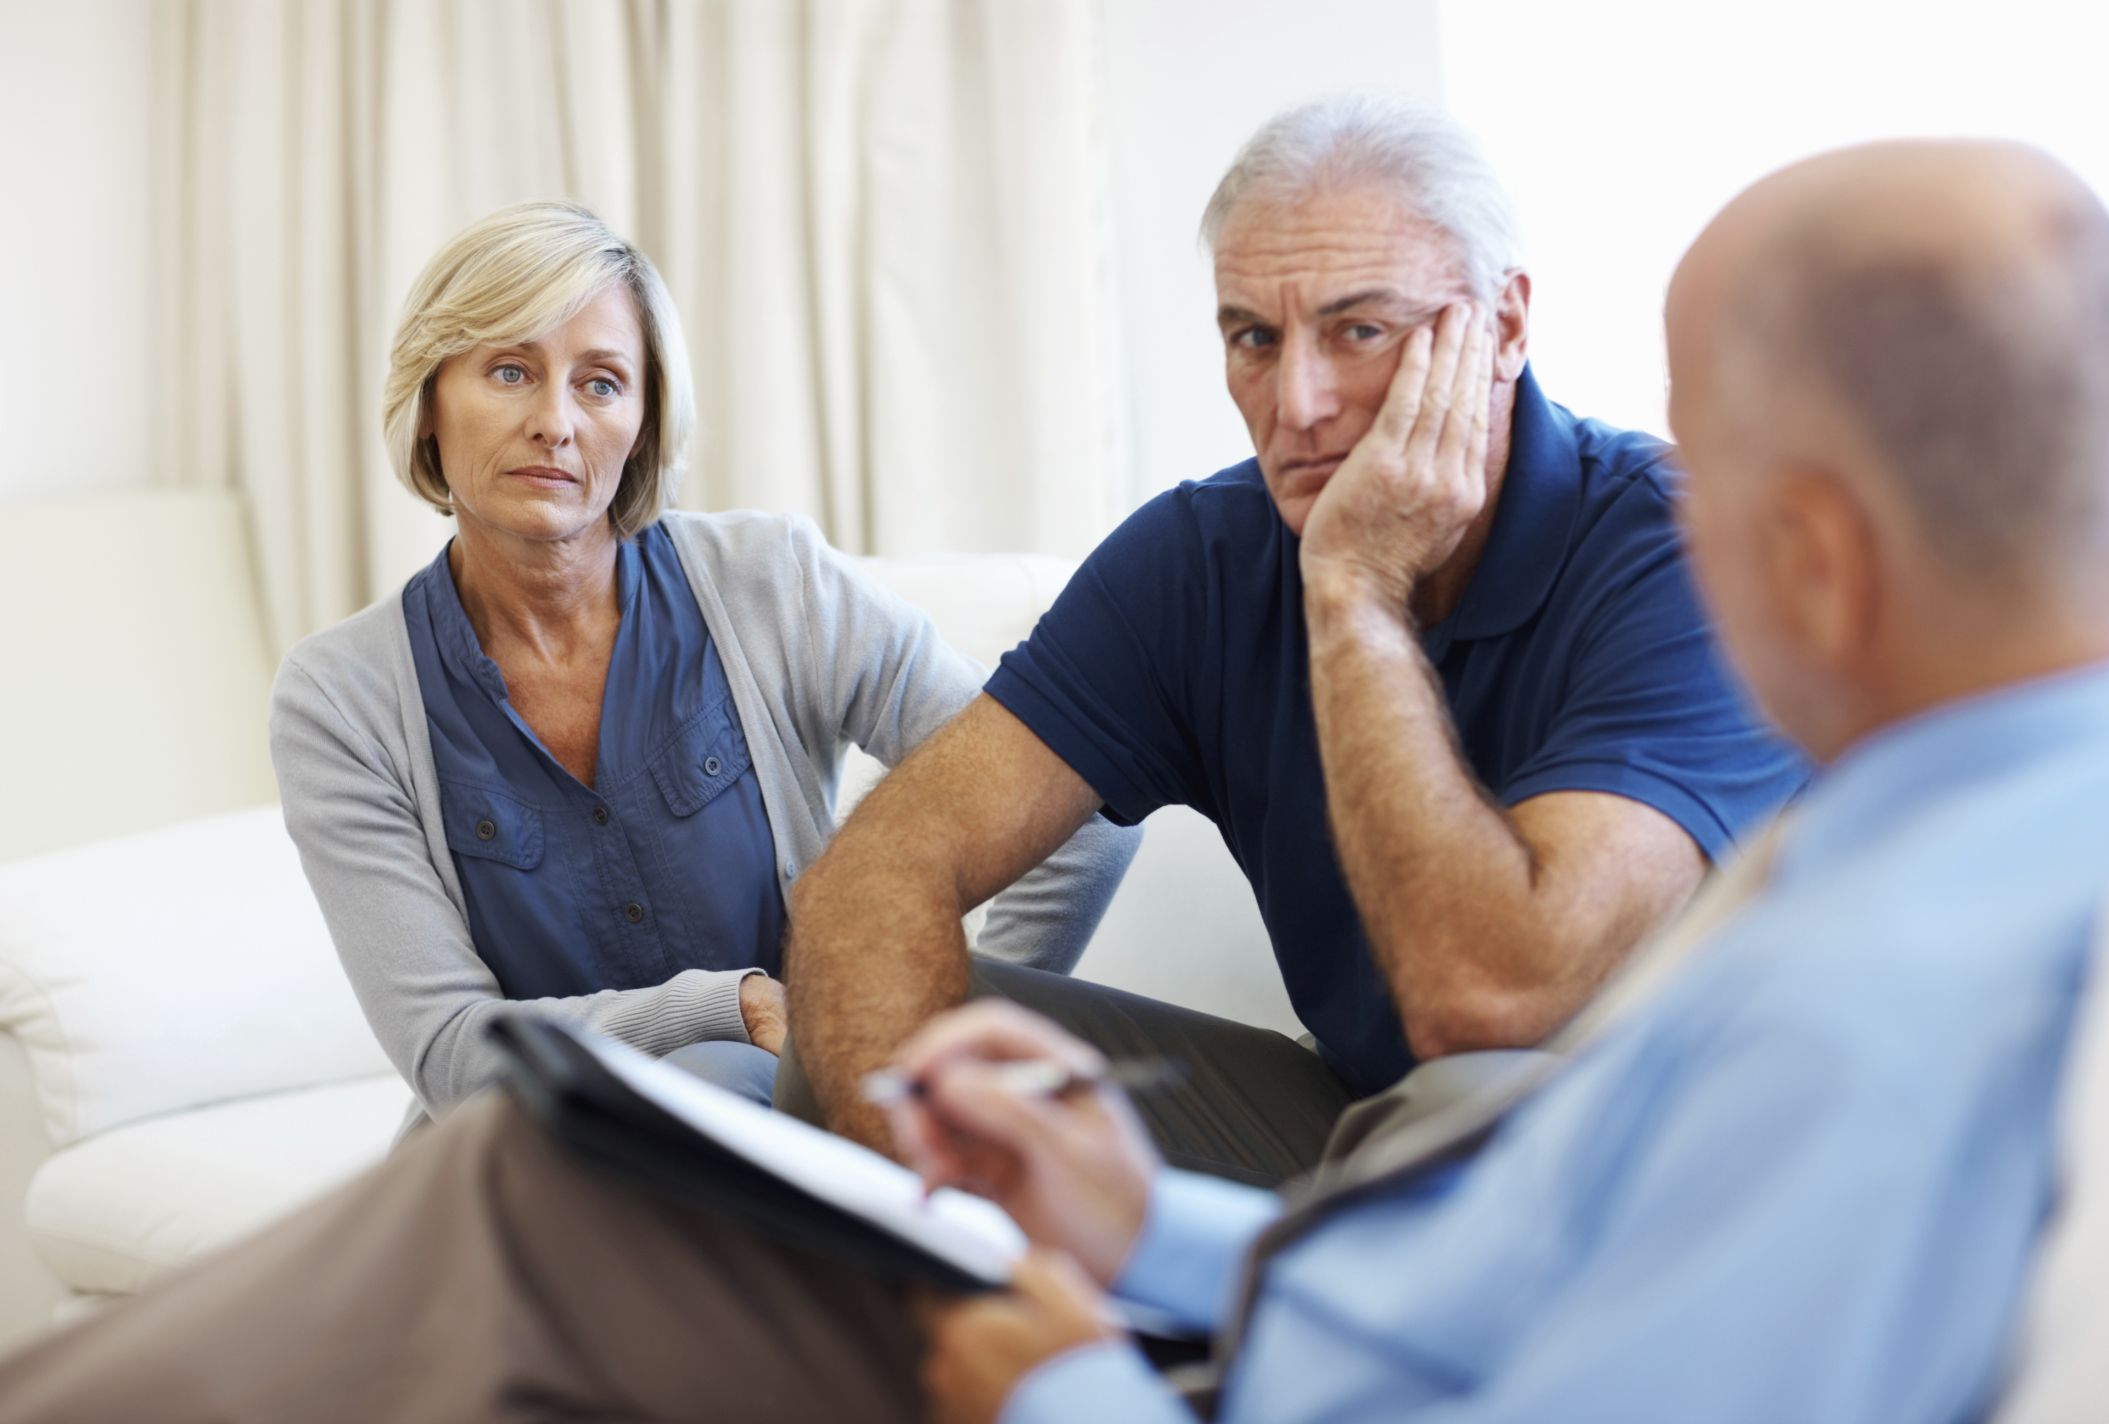 Tips To Help Your Marriage Counseling Be Successful